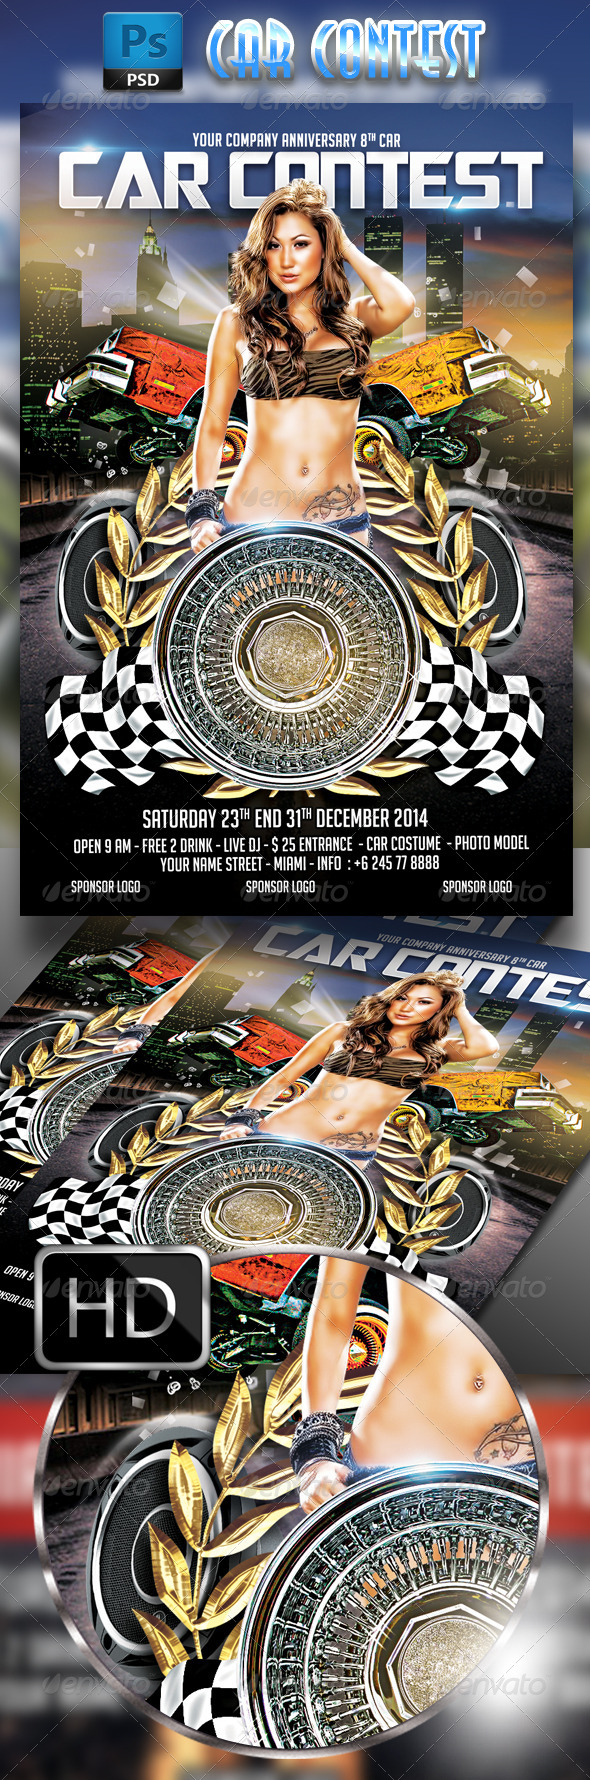 Car Contest Flyer Template